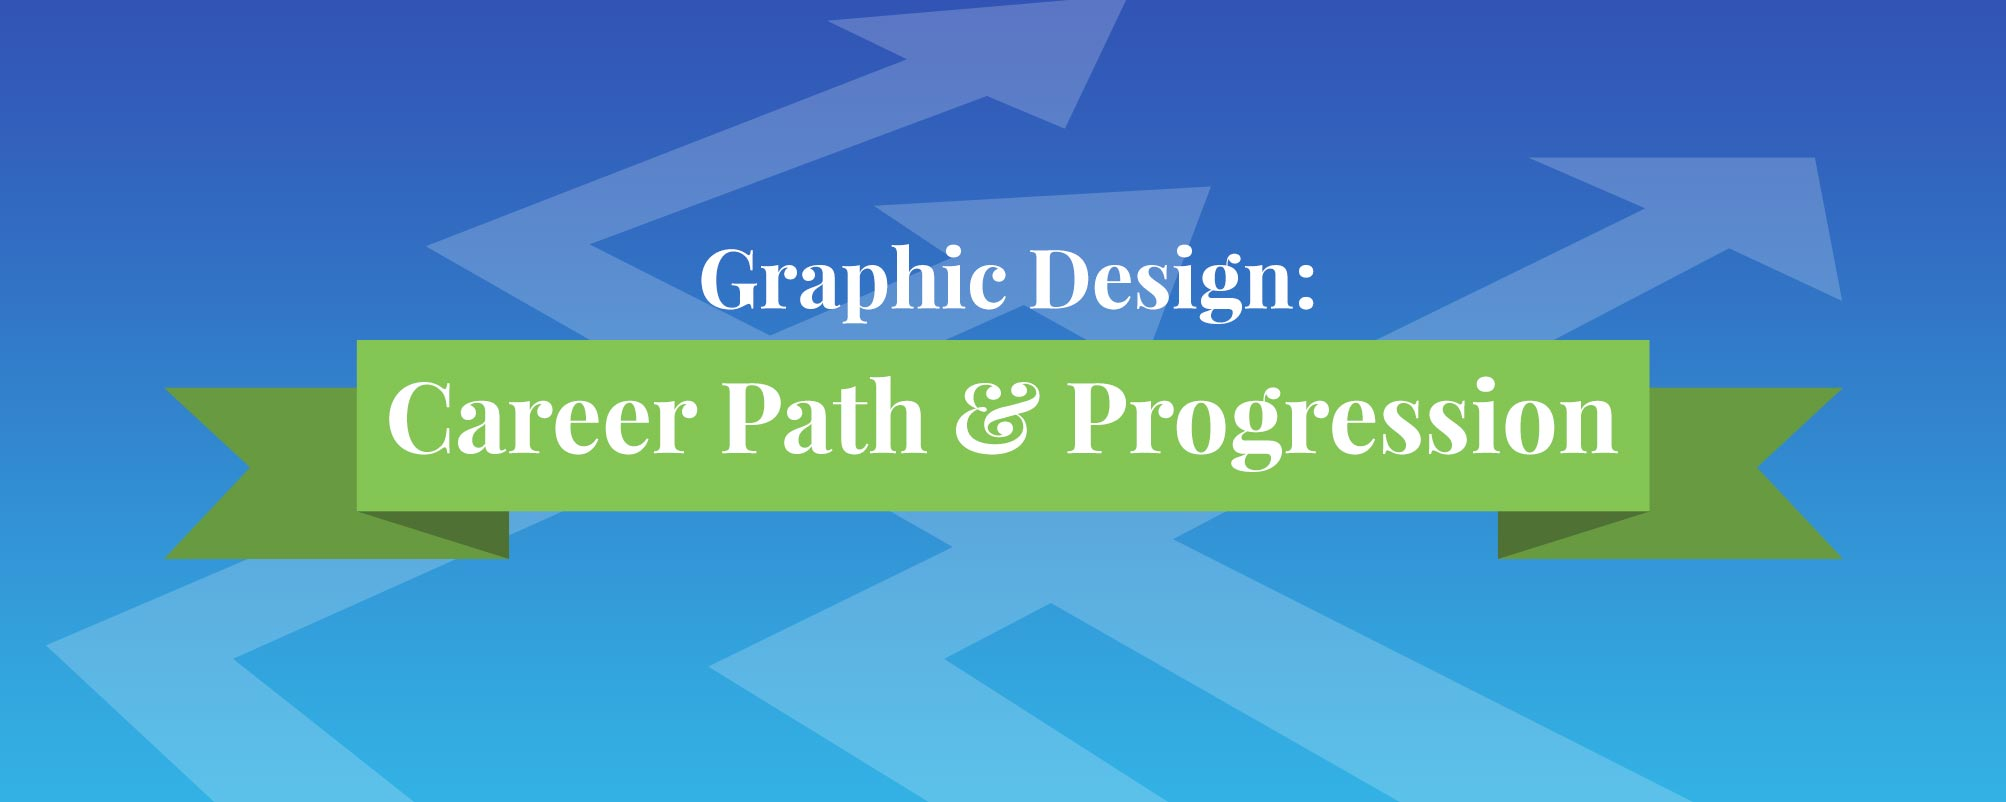 graphic design career path and progression - blog